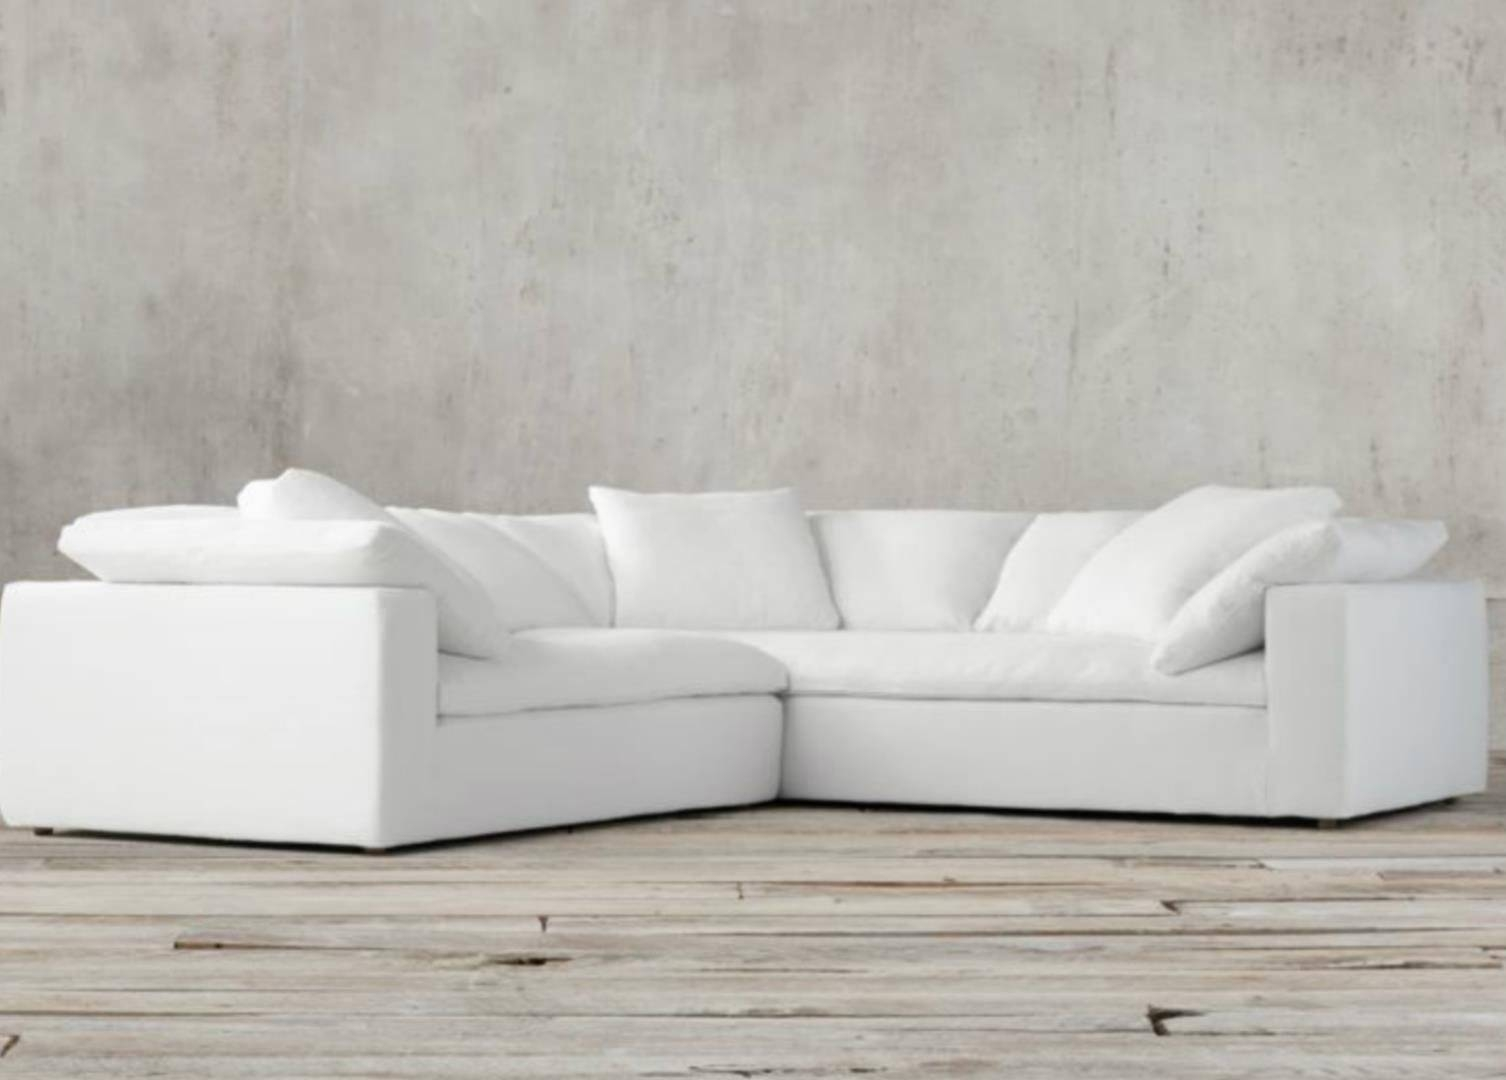 Sofa: Rh Sofa | Restoration Hardware Sectional | Chesterfield inside Cloud Sectional Sofas (Image 14 of 15)